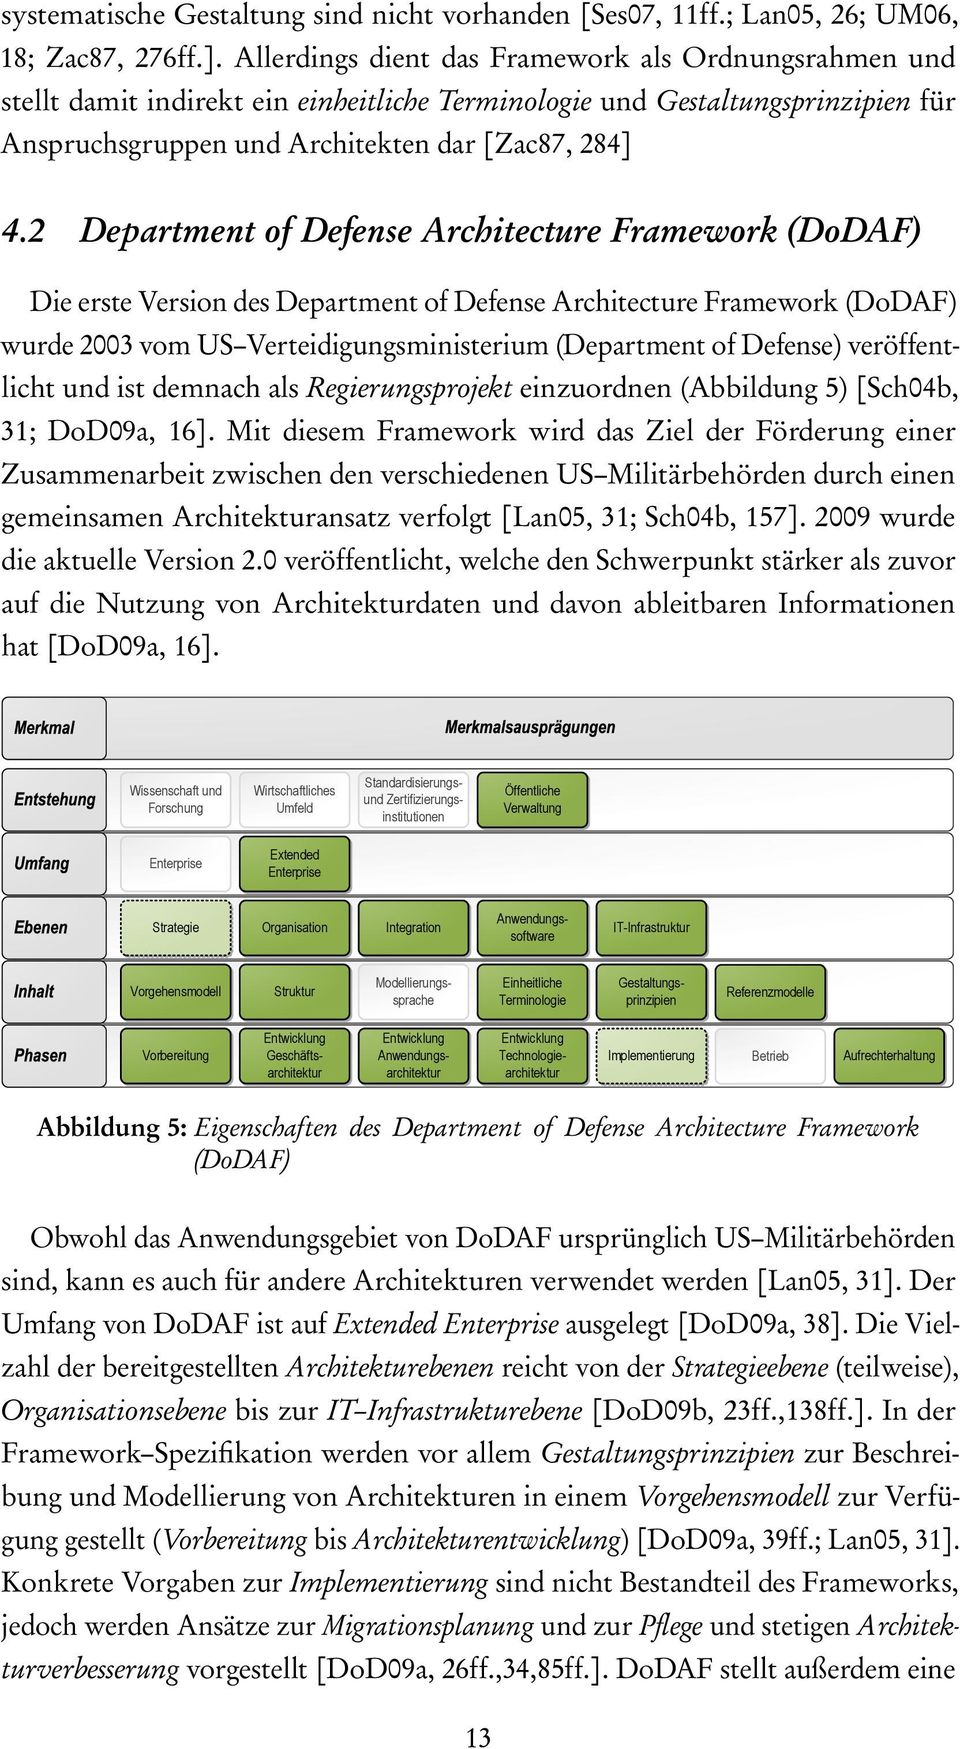 2 Department of Defense Architecture Framework (DoDAF) Die erste Version des Department of Defense Architecture Framework (DoDAF) wurde 2003 vom US Verteidigungsministerium (Department of Defense)